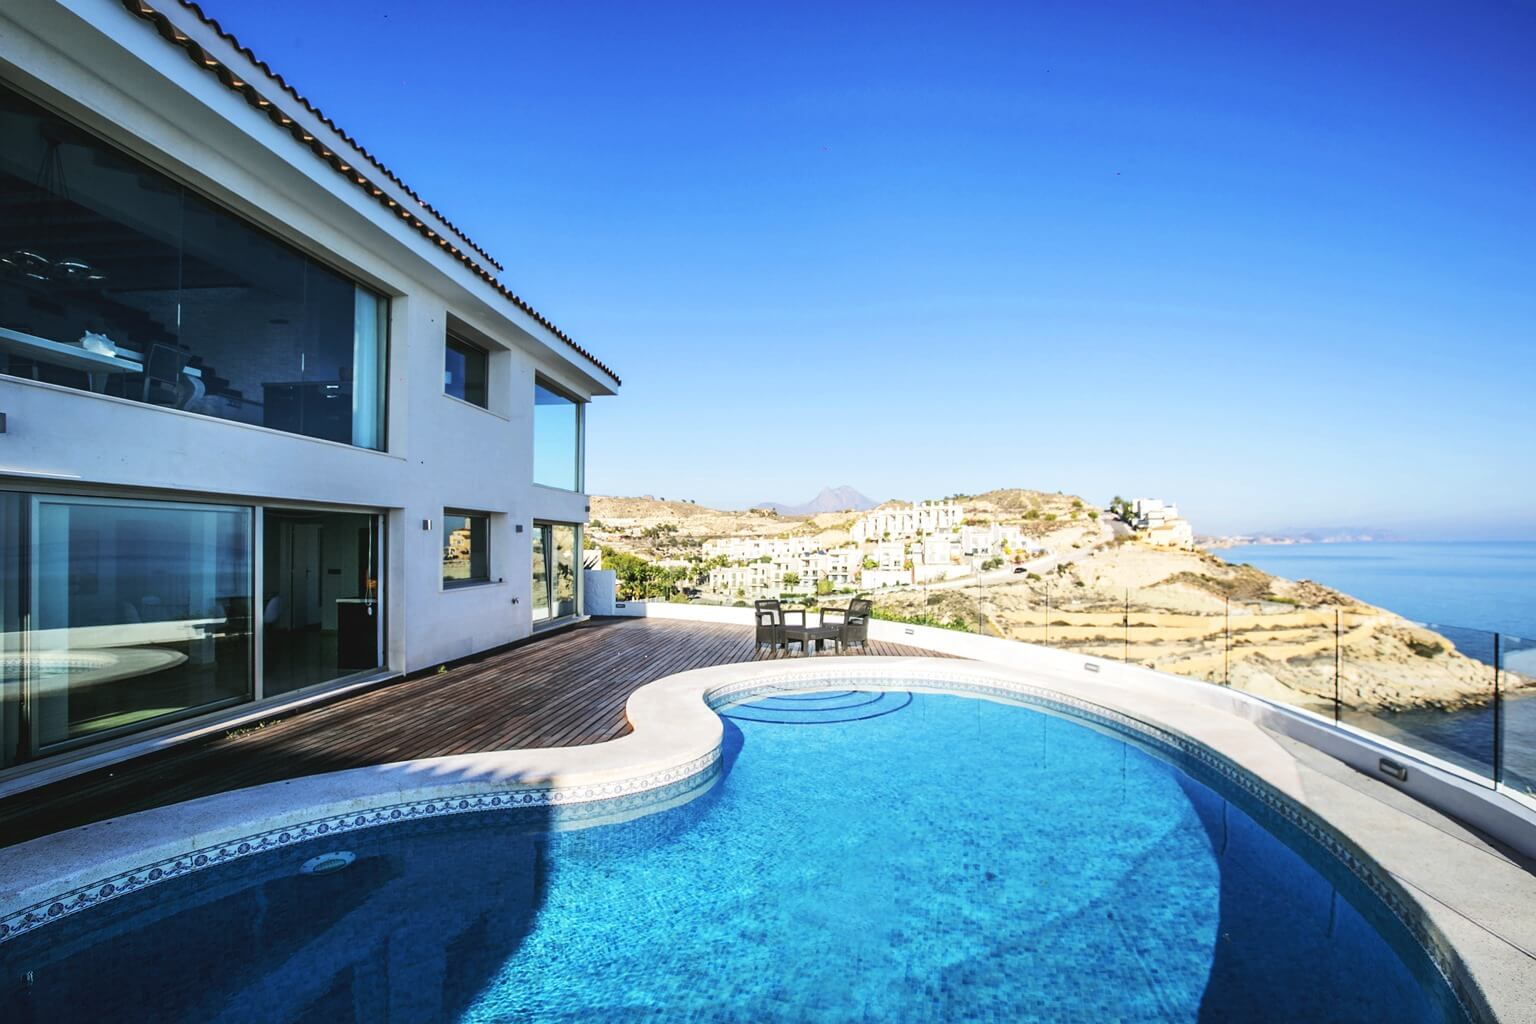 Property for Sale in Spain